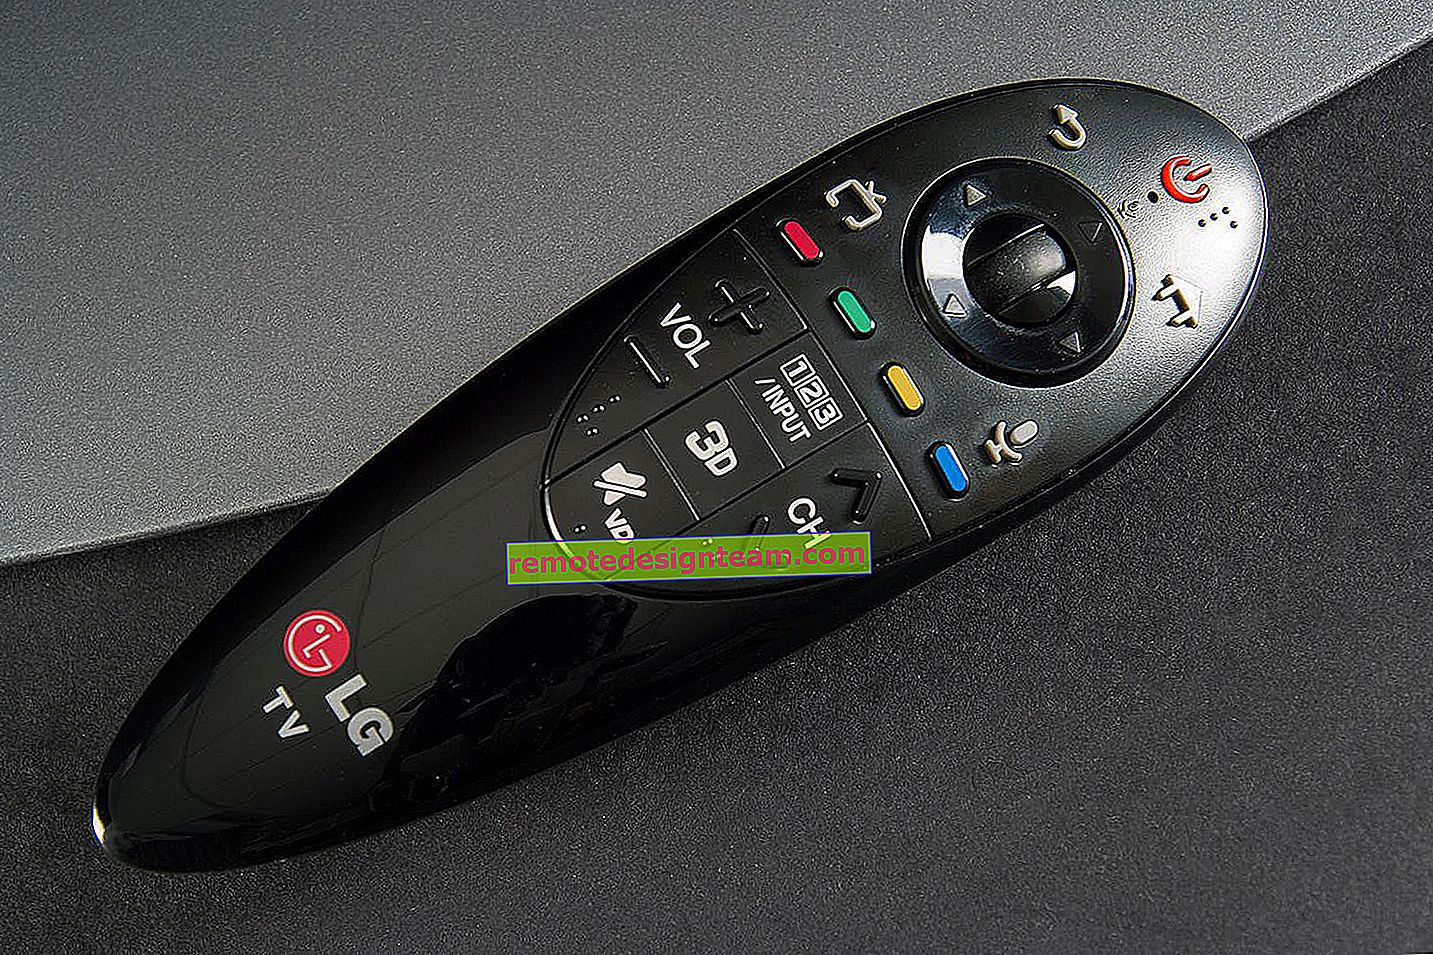 Selezione di LG Magic Remote. Compatibilità del telecomando con Smart TV